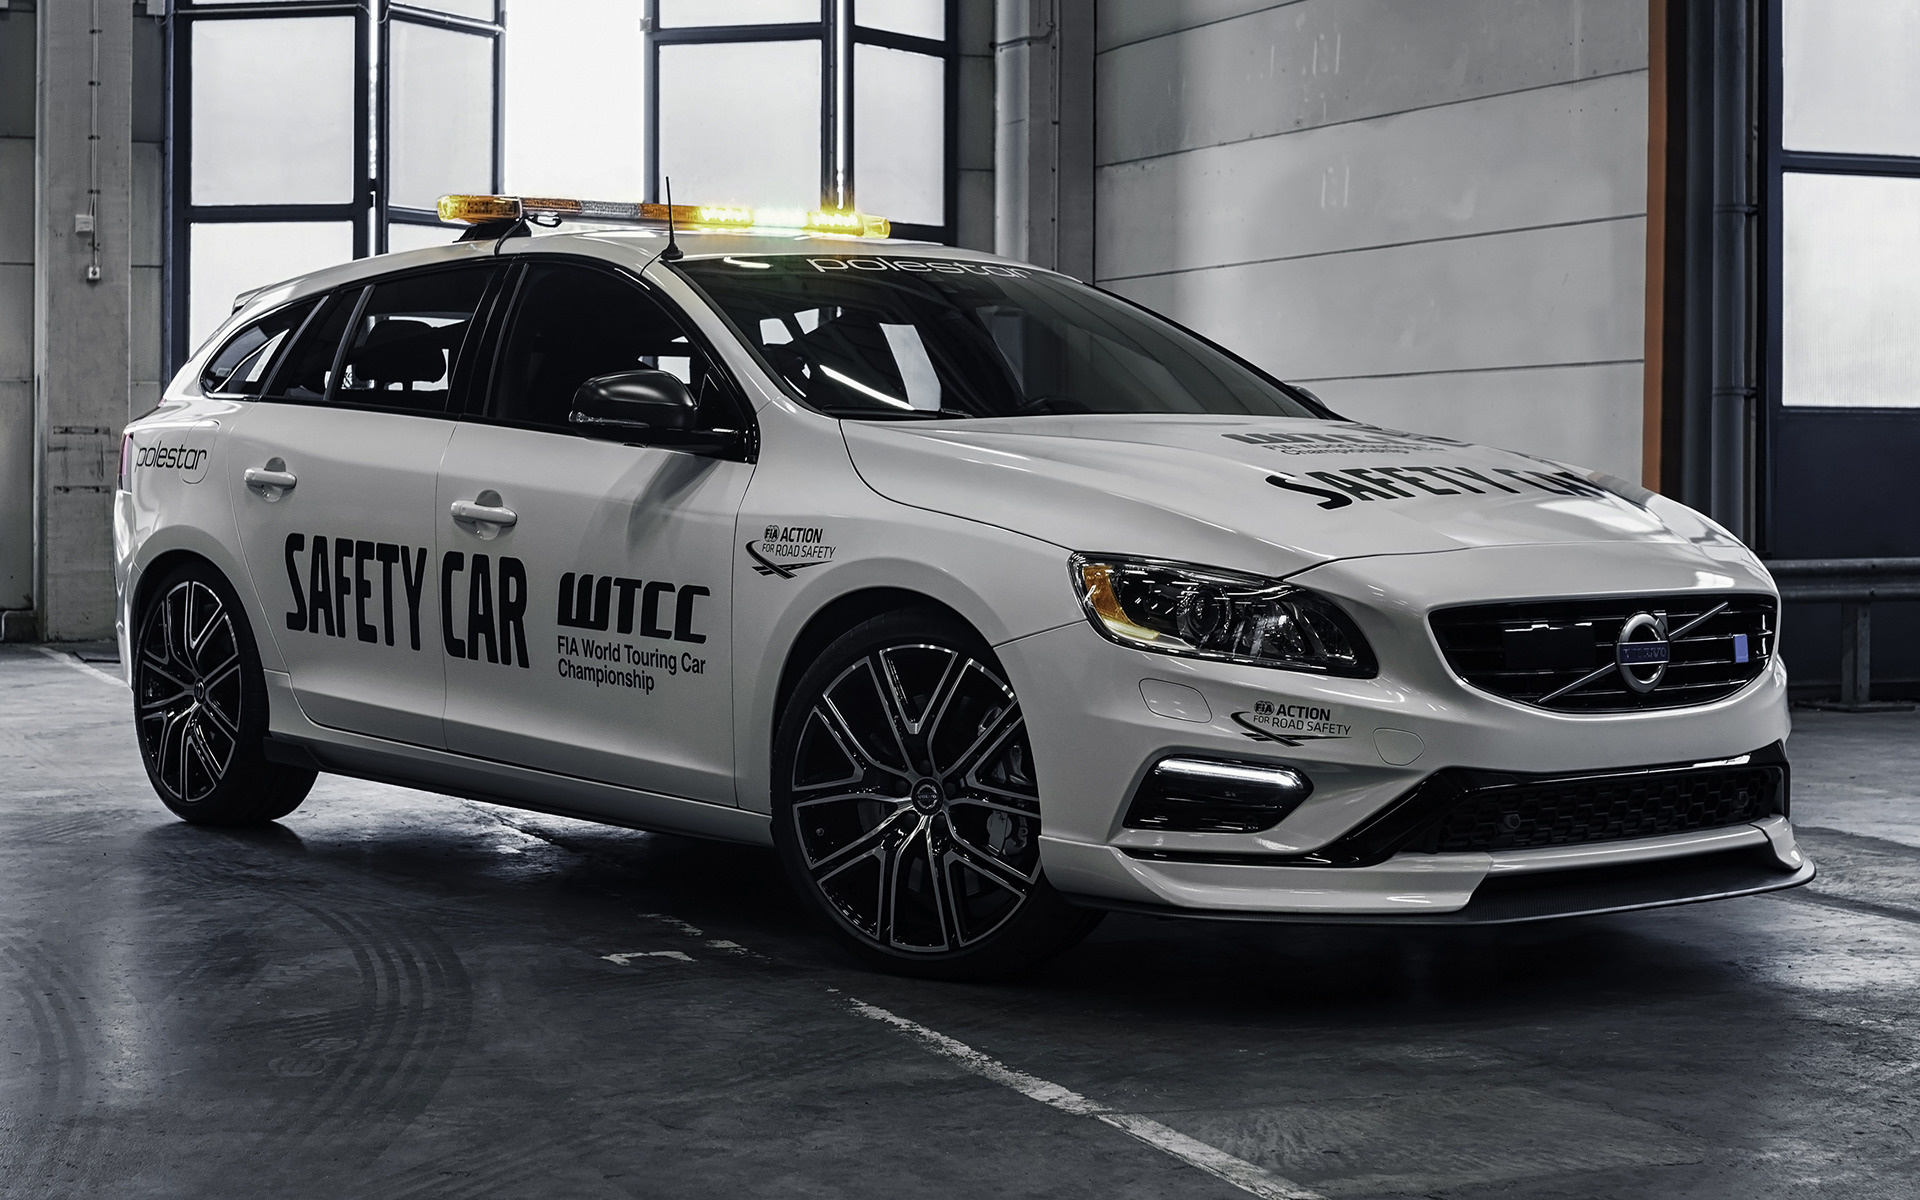 2017 Volvo V60 Polestar WTCC Safety Car   Wallpapers and HD Images 1920x1200